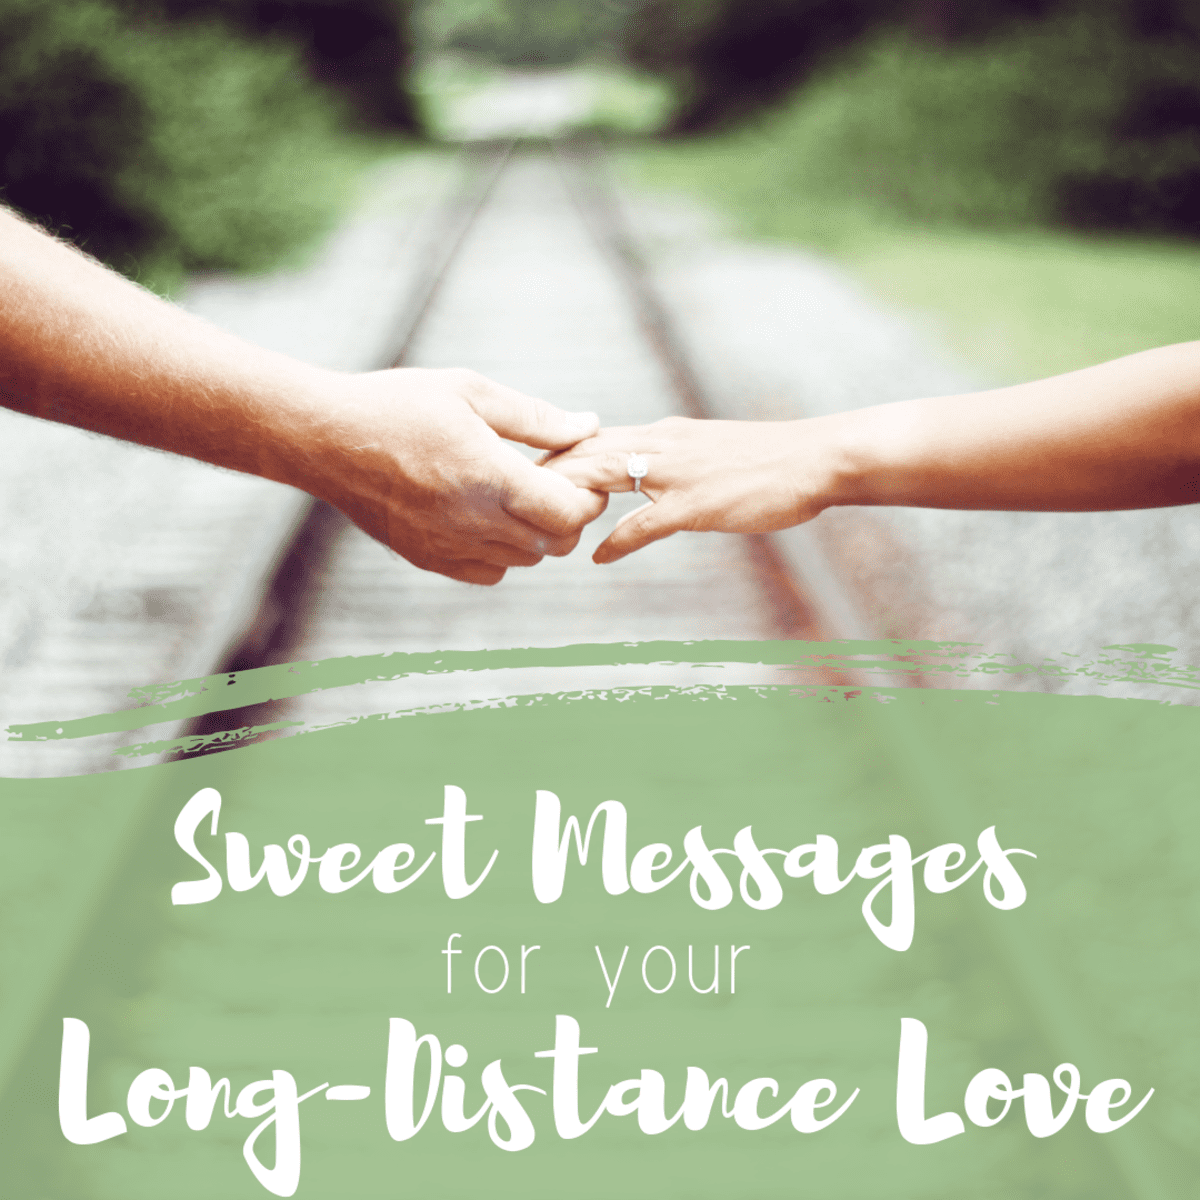 Your messages missing love Quotes About